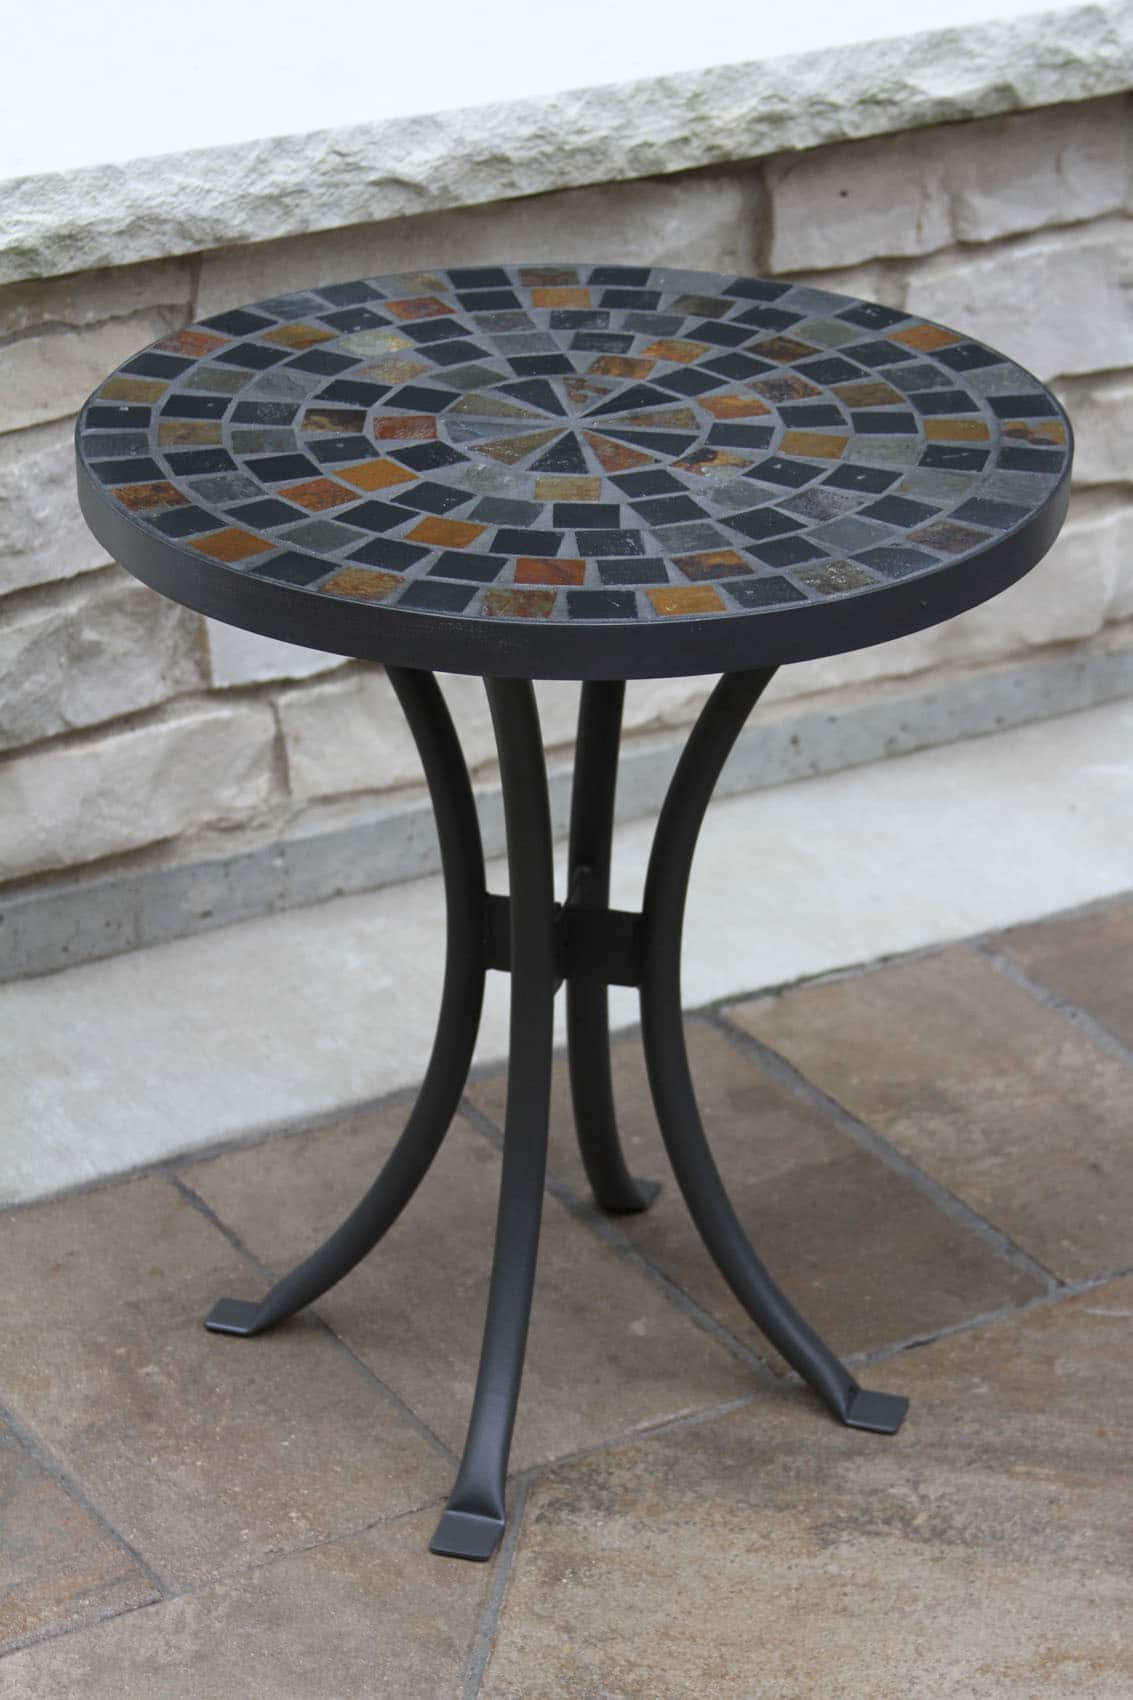 slate mosaic accent table for decks patios and gardens cobble stone indoor glass end tables ikea outdoor buffet sideboard blue metal bedside white cabinet wire basket small corner